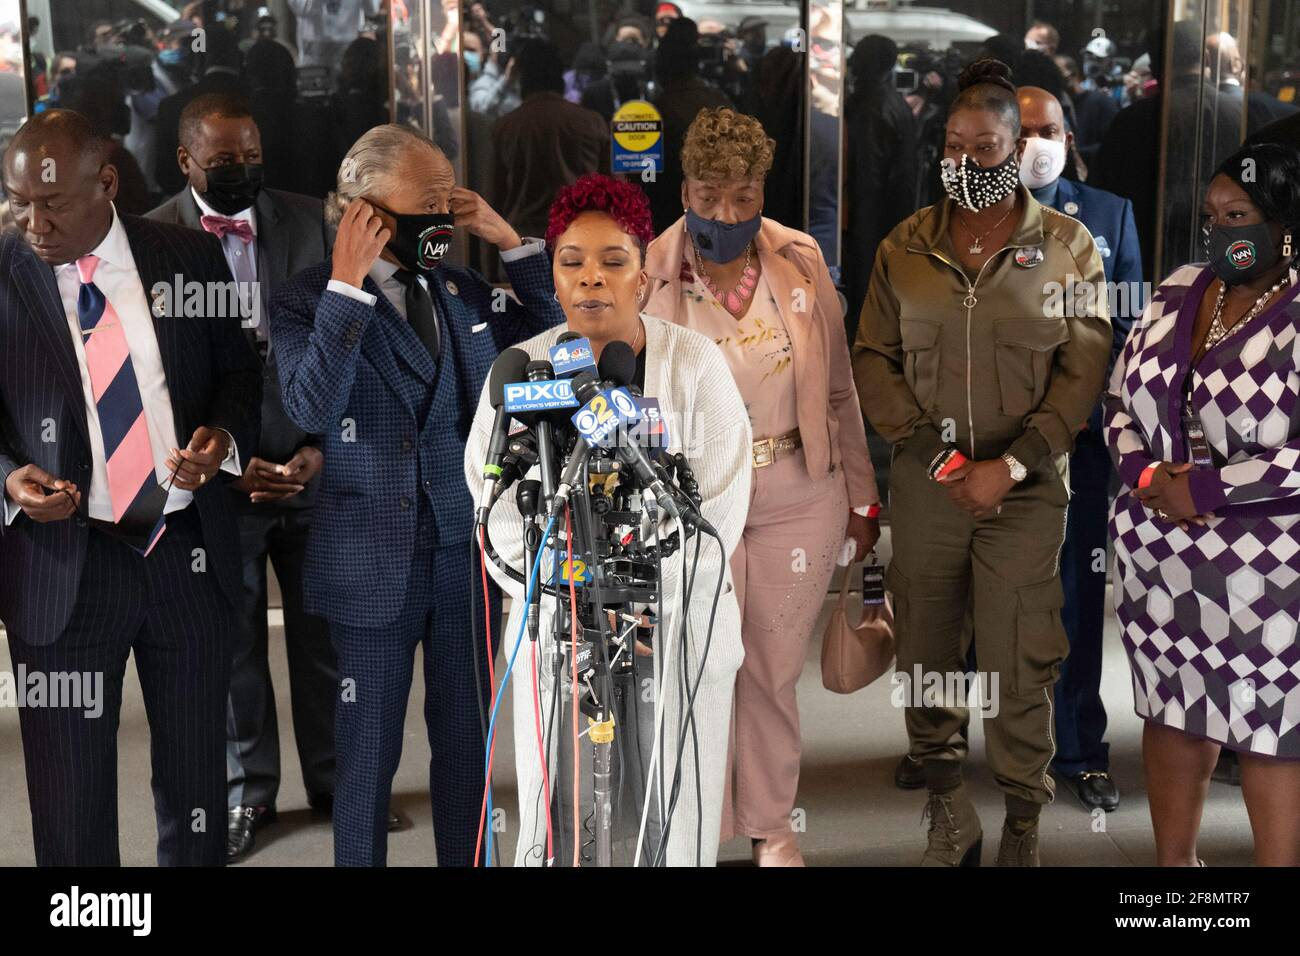 New York, New York, USA. 14th Apr, 2021. Mothers of the Movement, Lesley McSpadden, (Michael Brown's Mother) speaks during a news conference at the Times Square Sheraton in New York. Brown was killed by former Ferguson, MO. police officer Darren Wilson, Brown's death sparked the birth of the Black Lives Matter Movement Credit: Brian Branch Price/ZUMA Wire/Alamy Live News Stock Photo